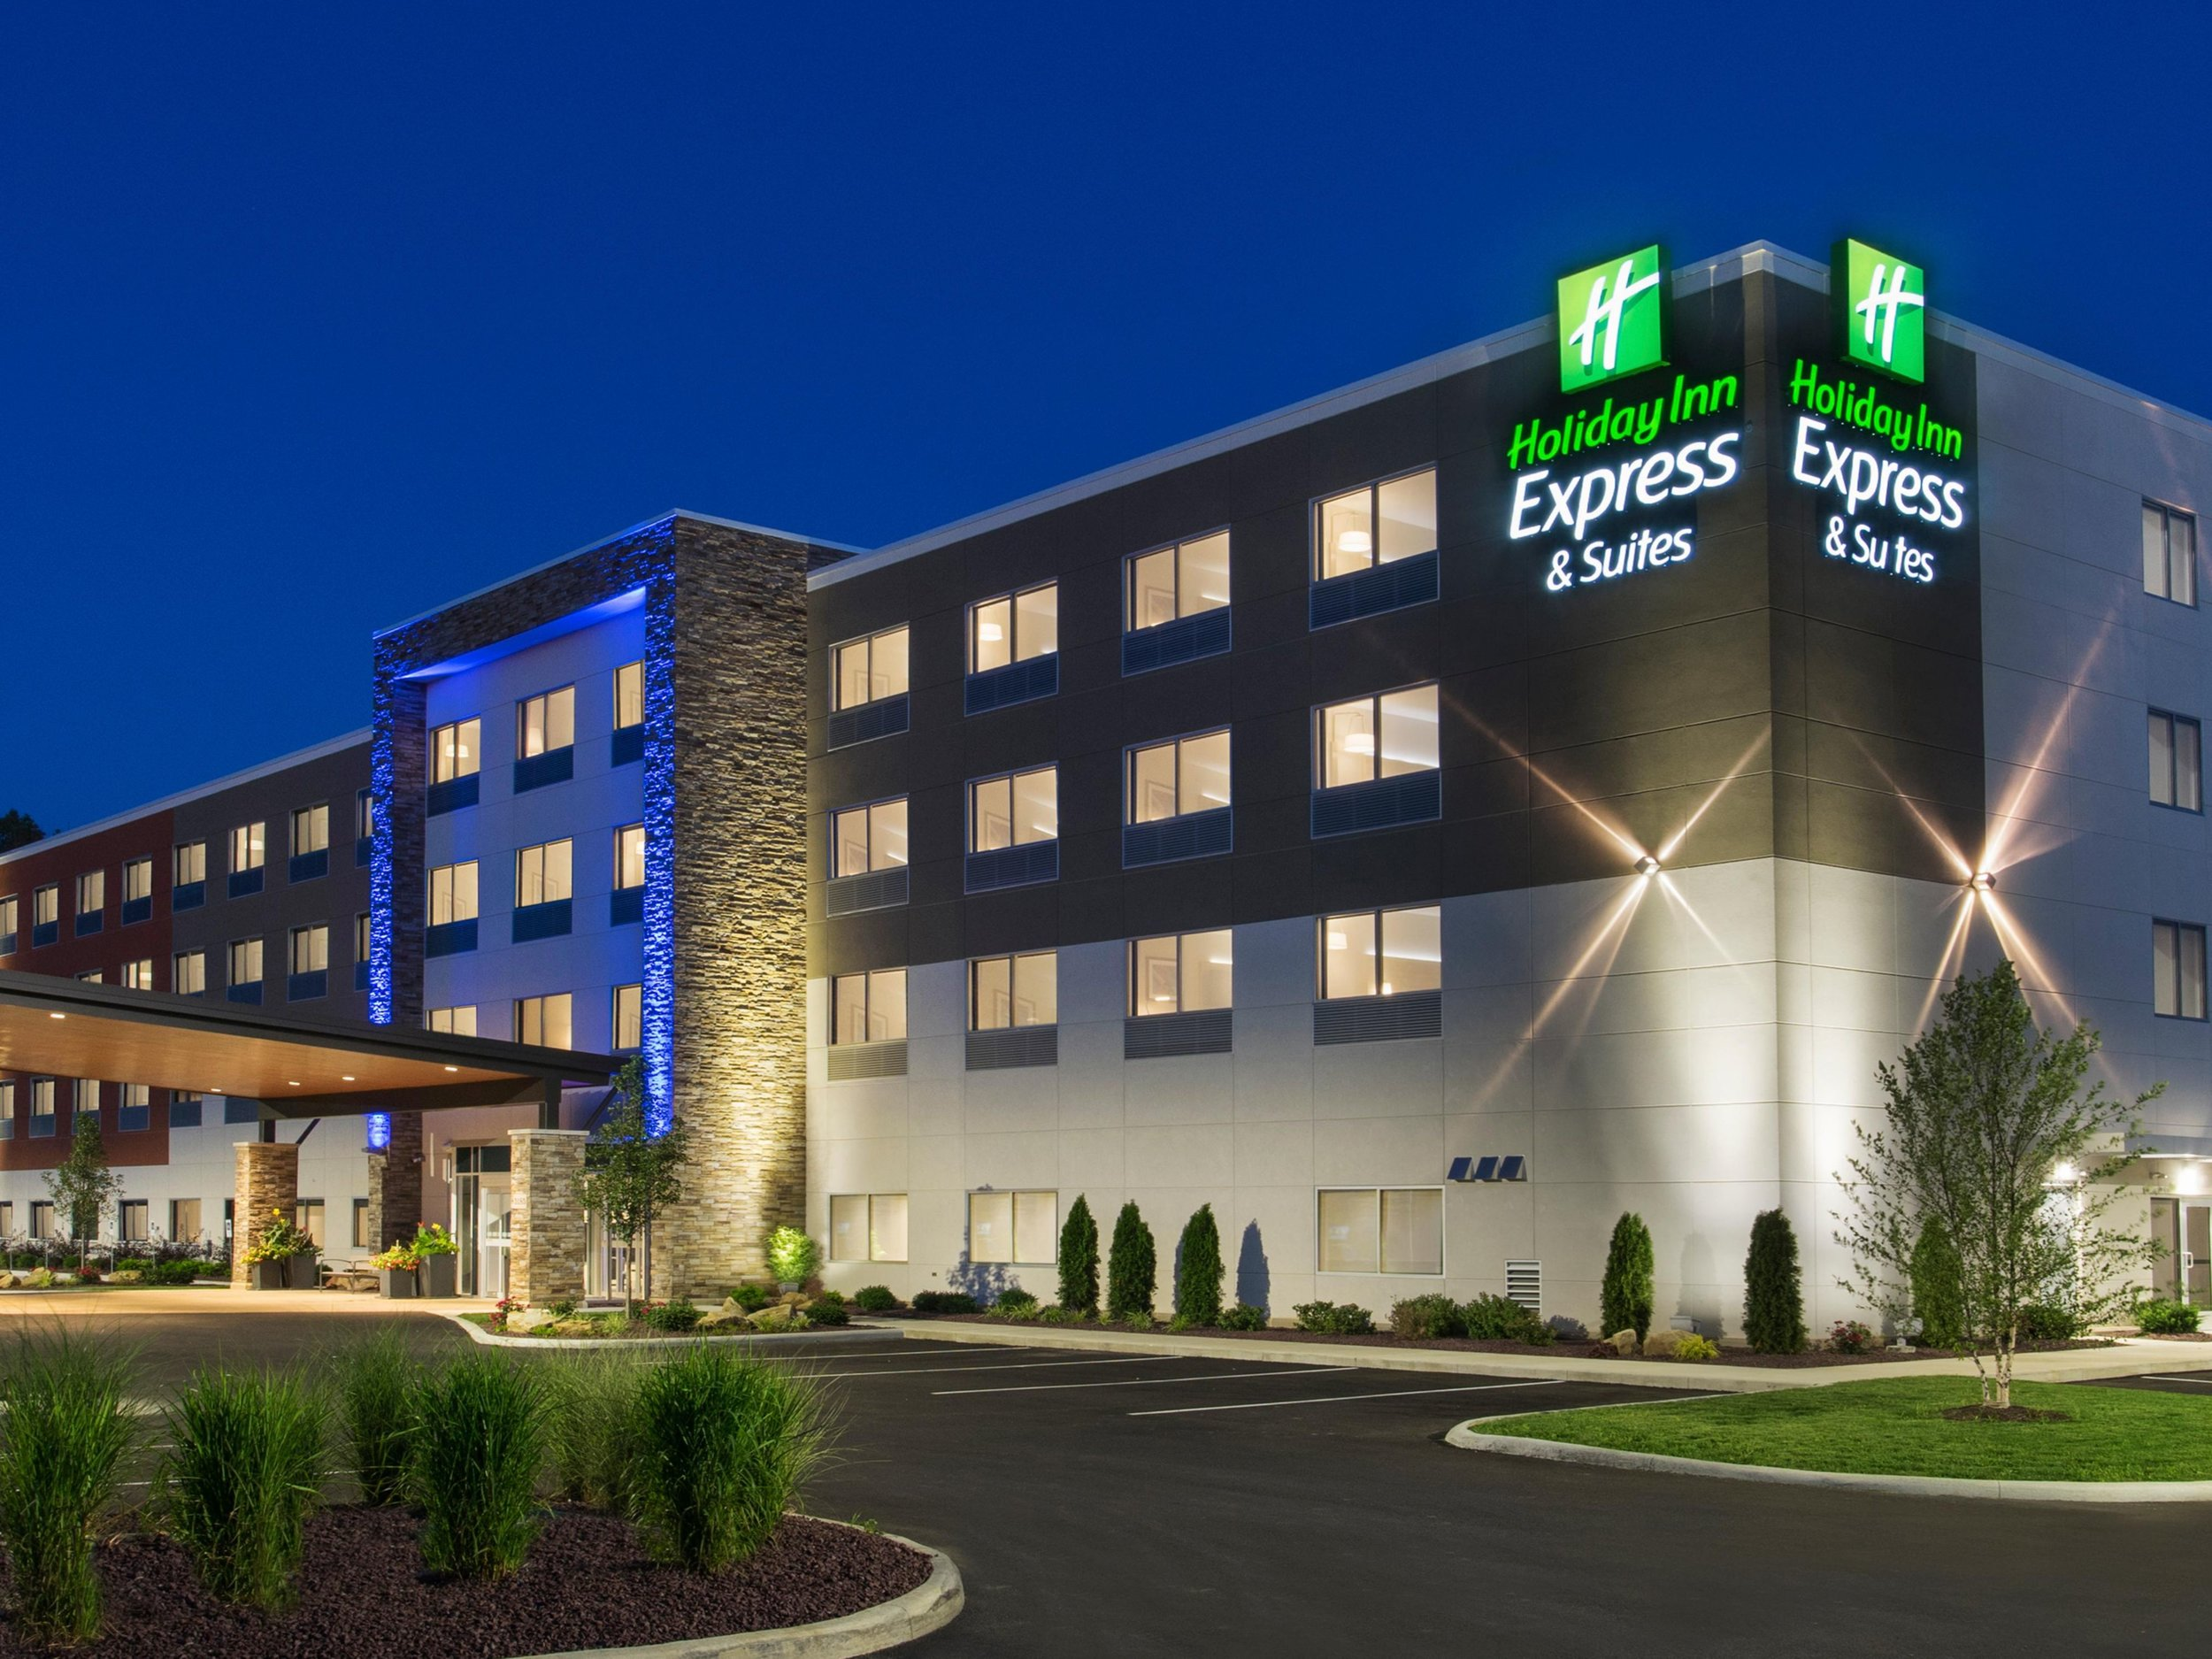 holiday-inn-express-and-suites.jpg